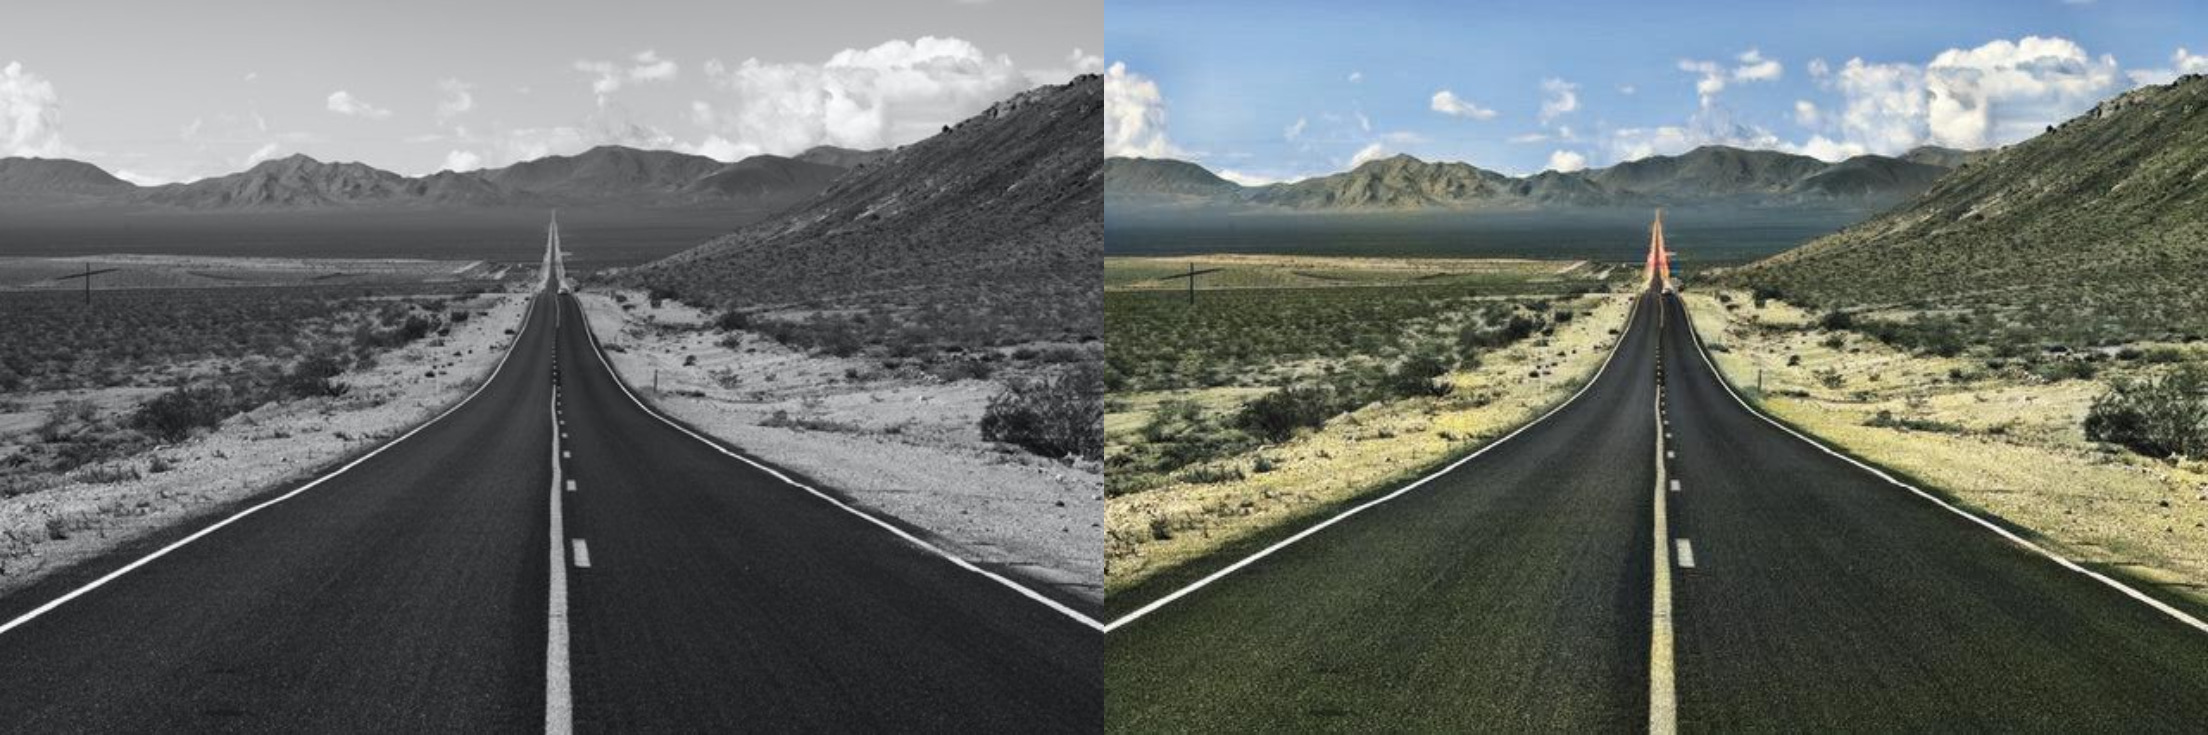 I will restore,  fix old photos and colorize black and white photos